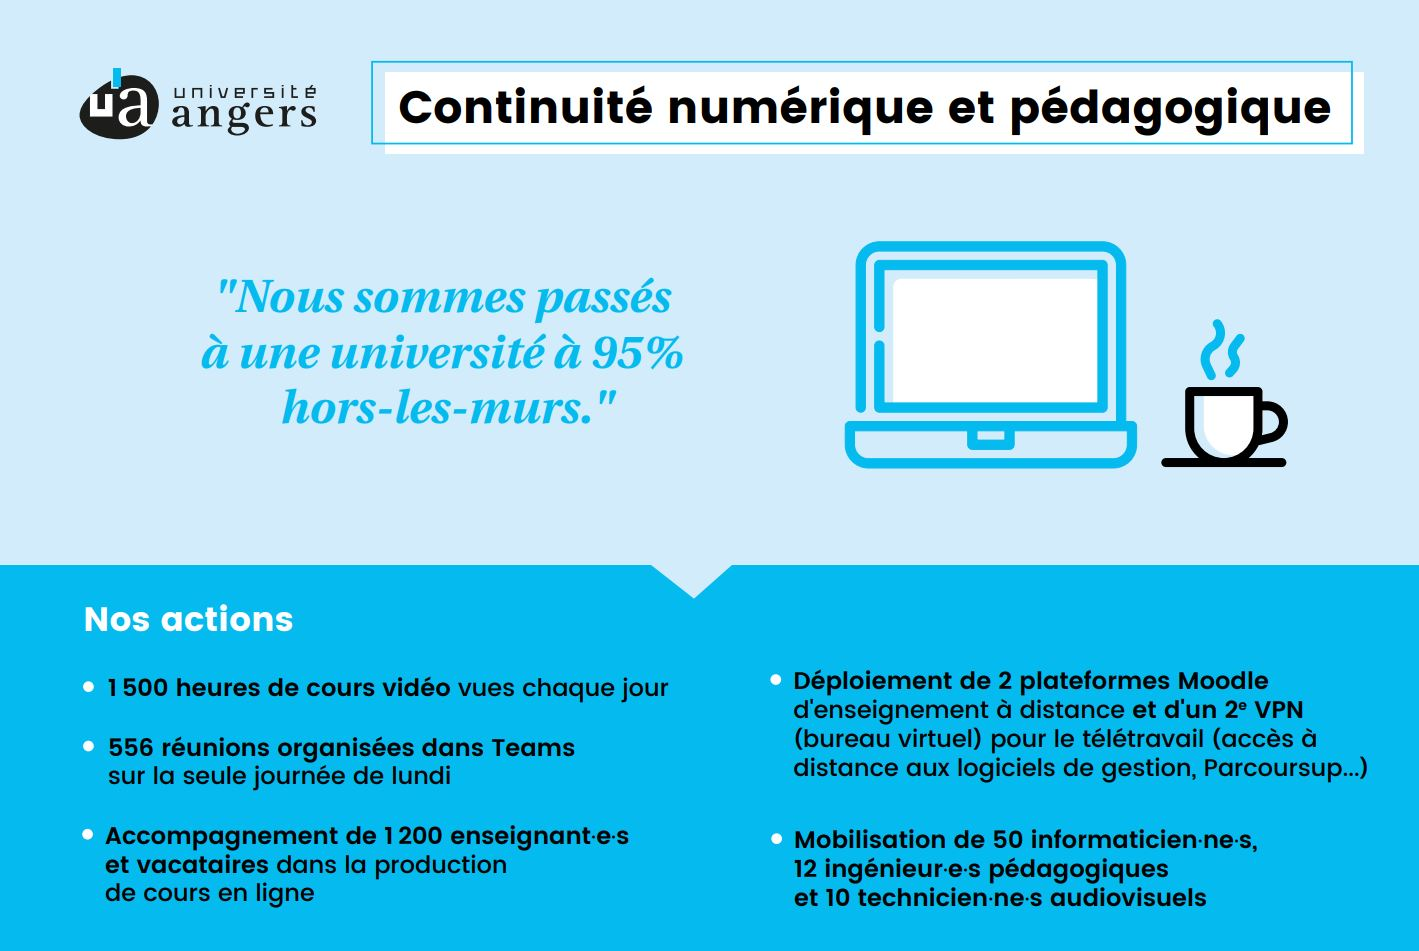 infographie universite angers